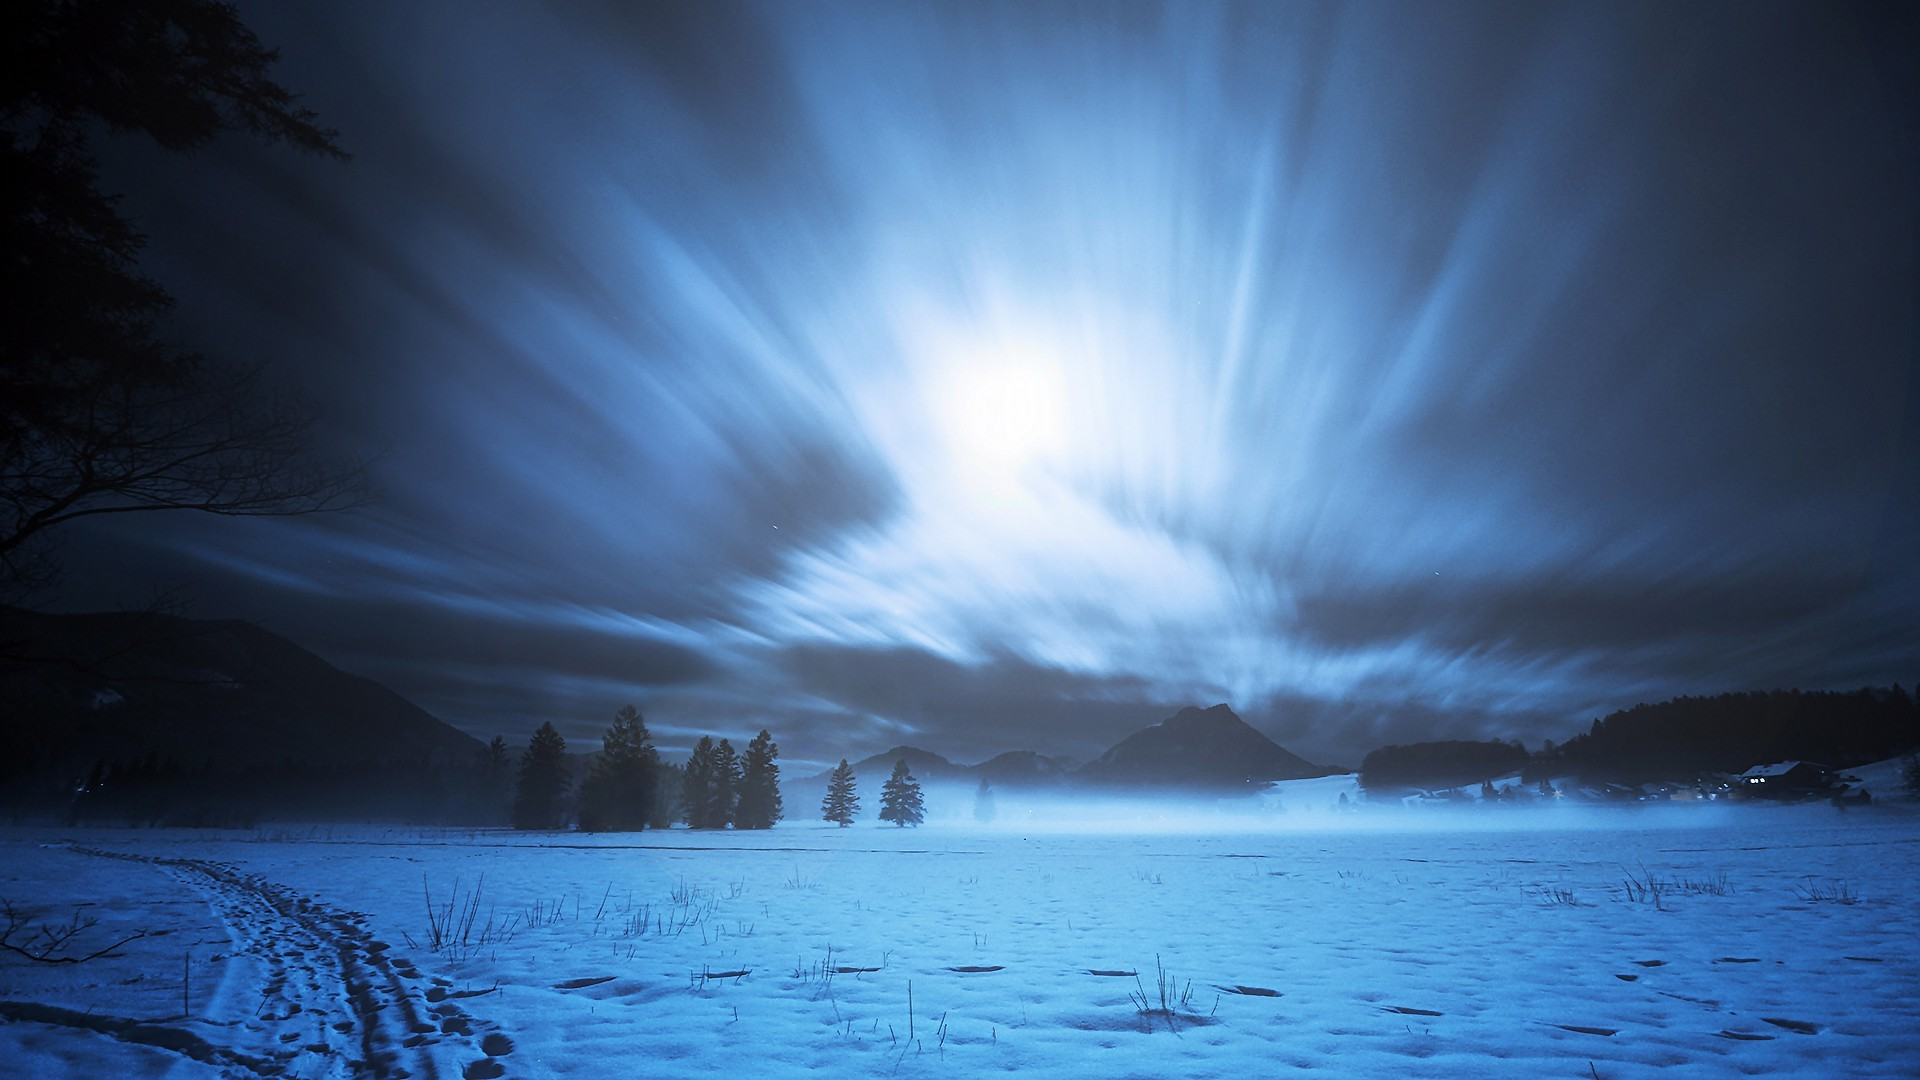 New 3d Desktop Wallpaper Hd 16 Nature Snow Moonlight Landscape Long Exposure Trees